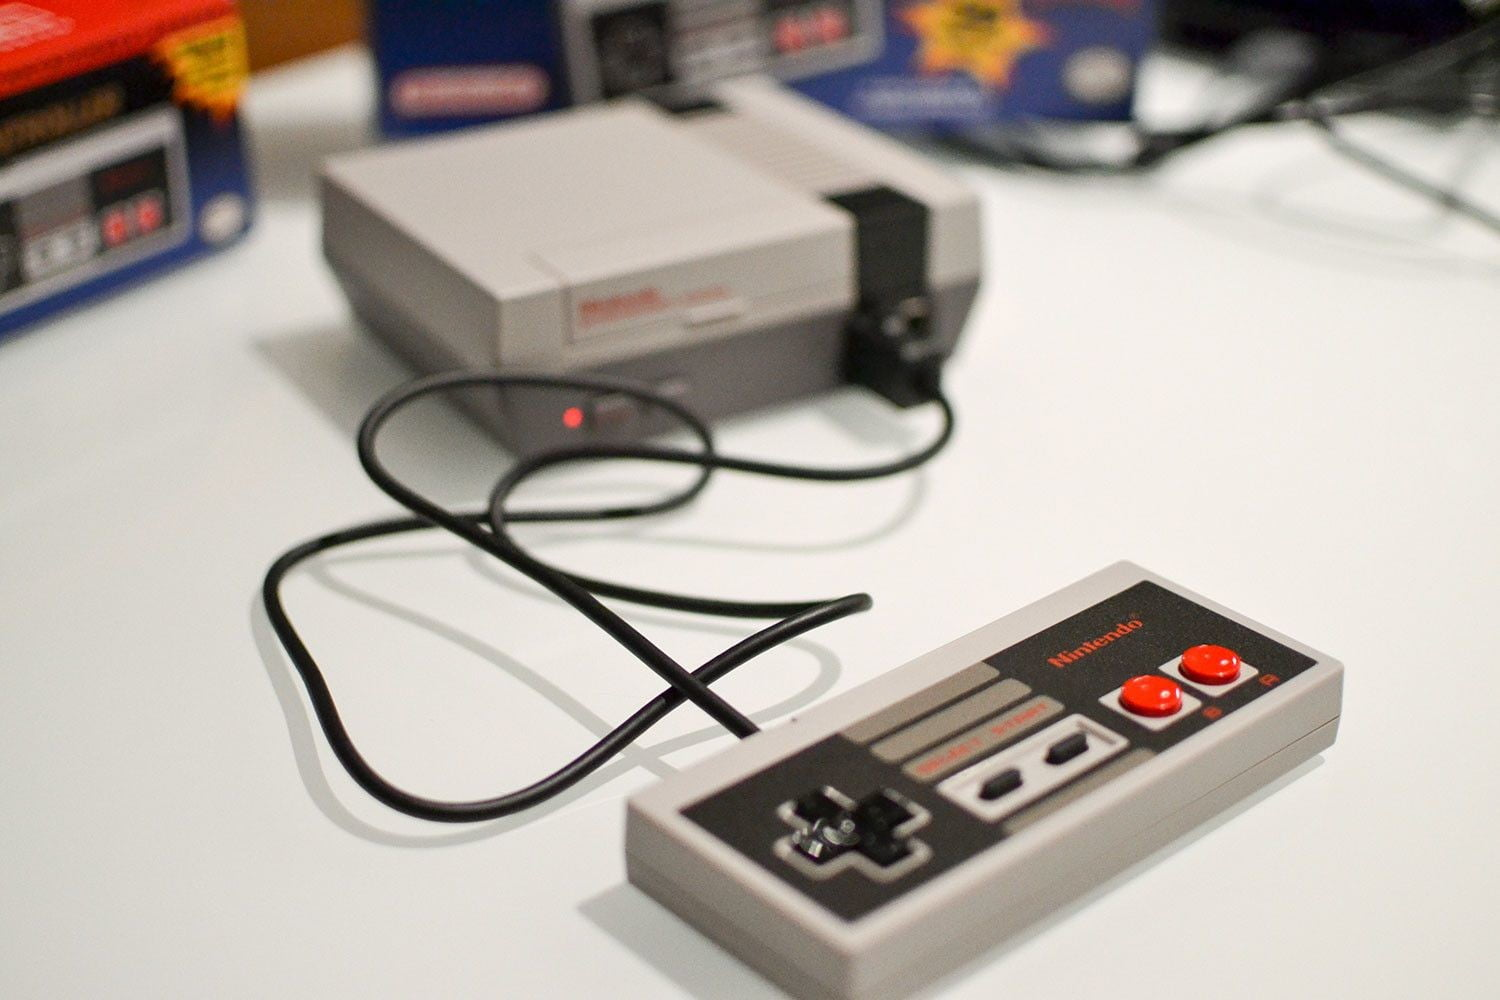 How to Hack a NES Classic Edition So You Can Play Over 700 Games